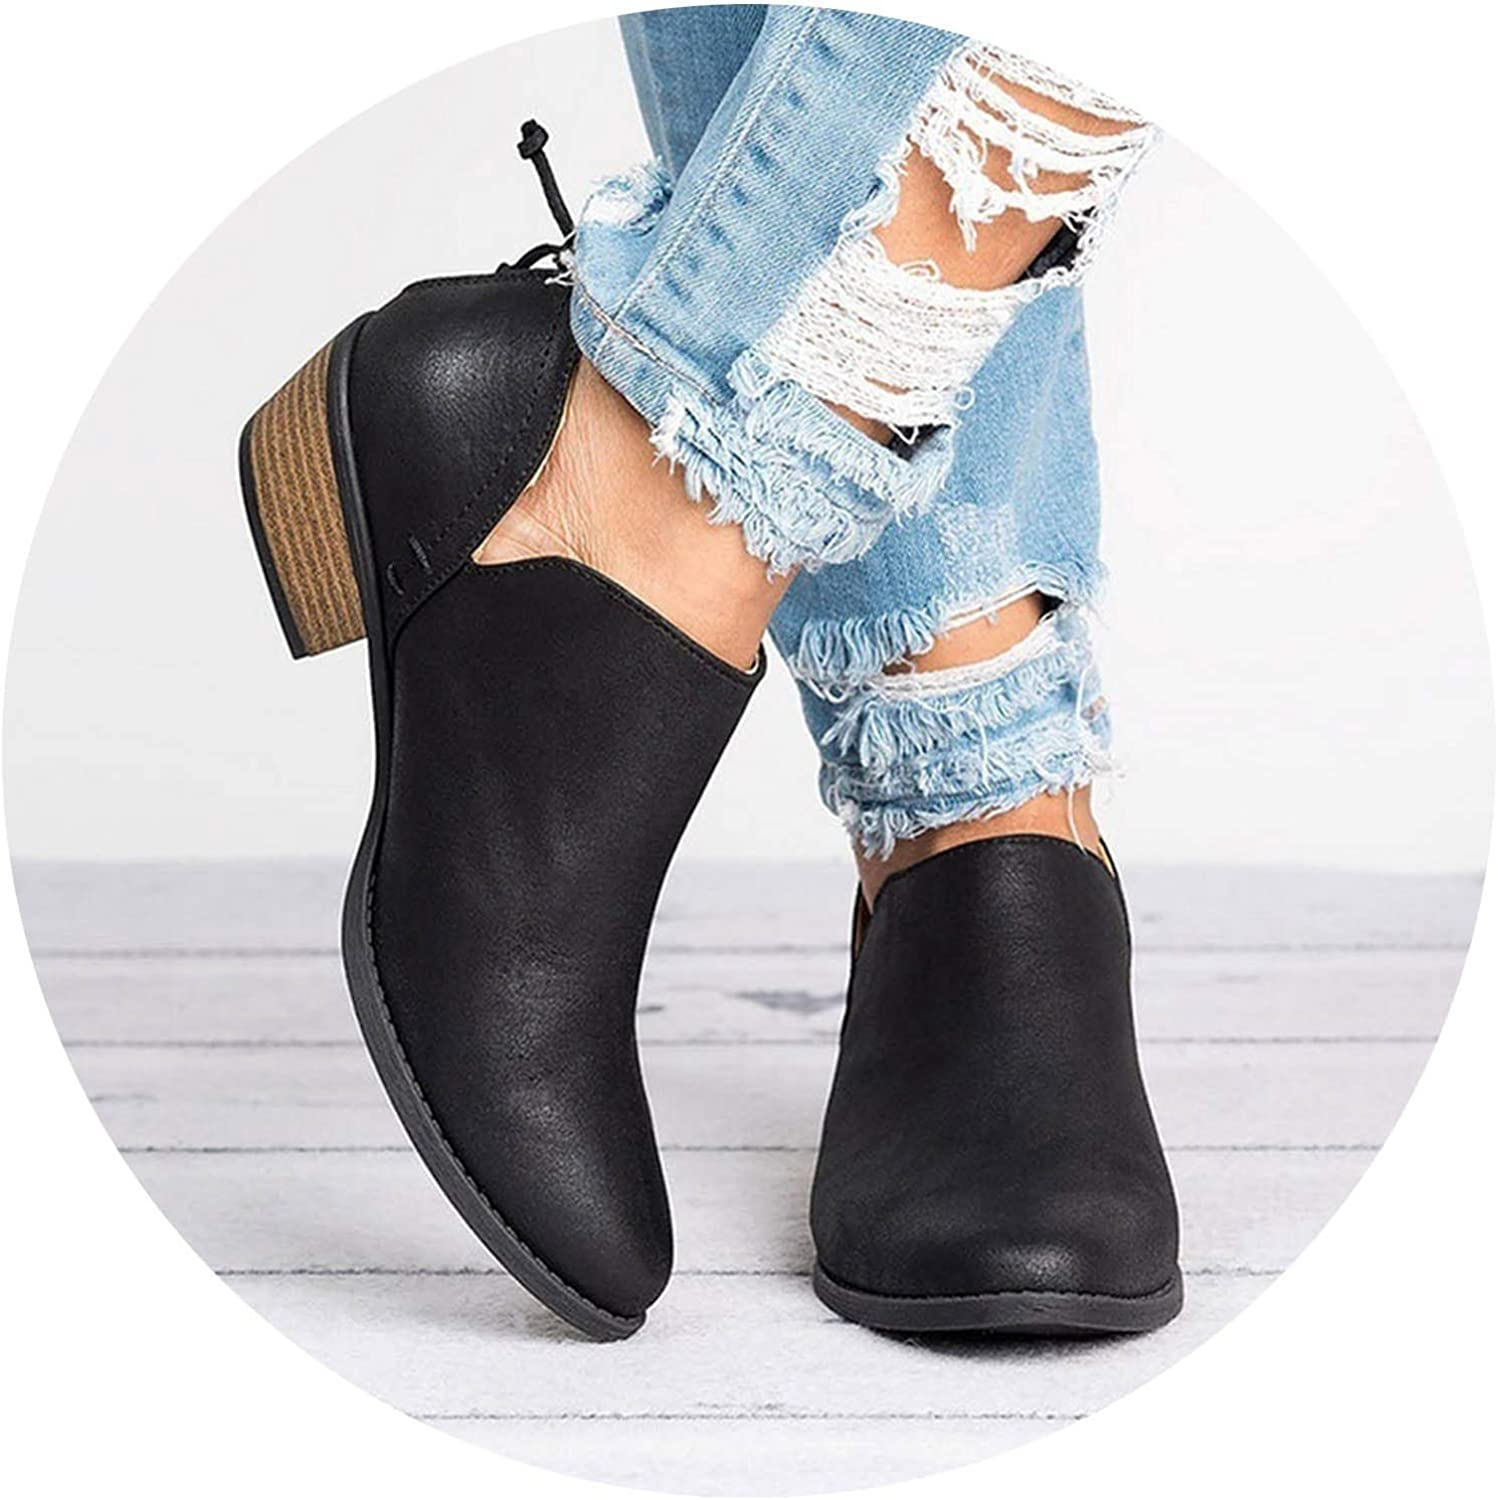 Women Square Heel Slip on Women High Heels shoes Pointed Toe Casual Fashion Boots